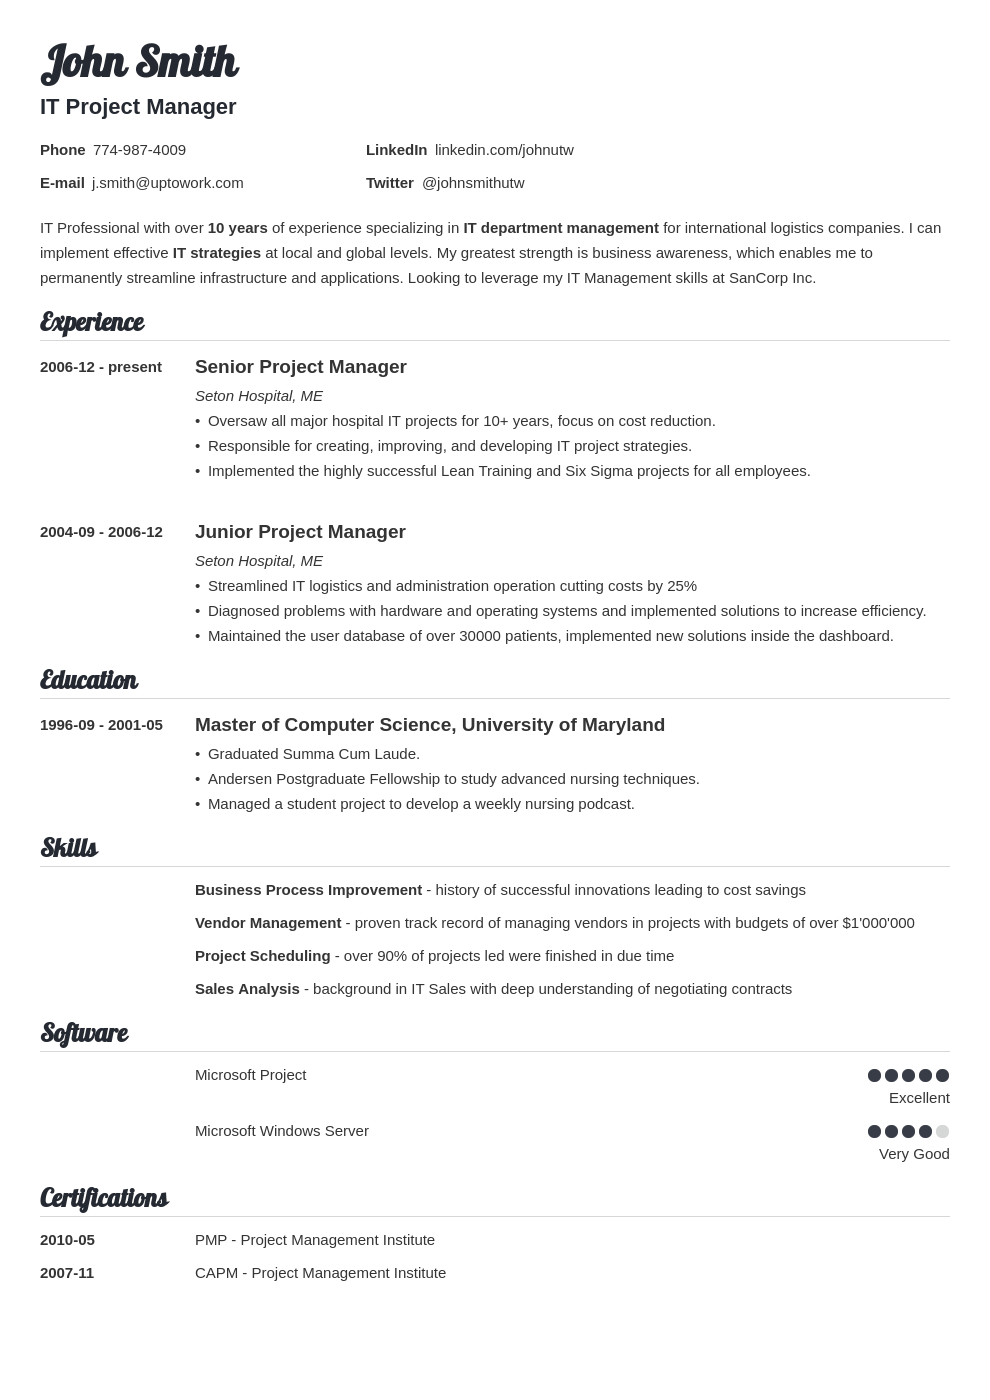 professional resume template valera - Resum Samples